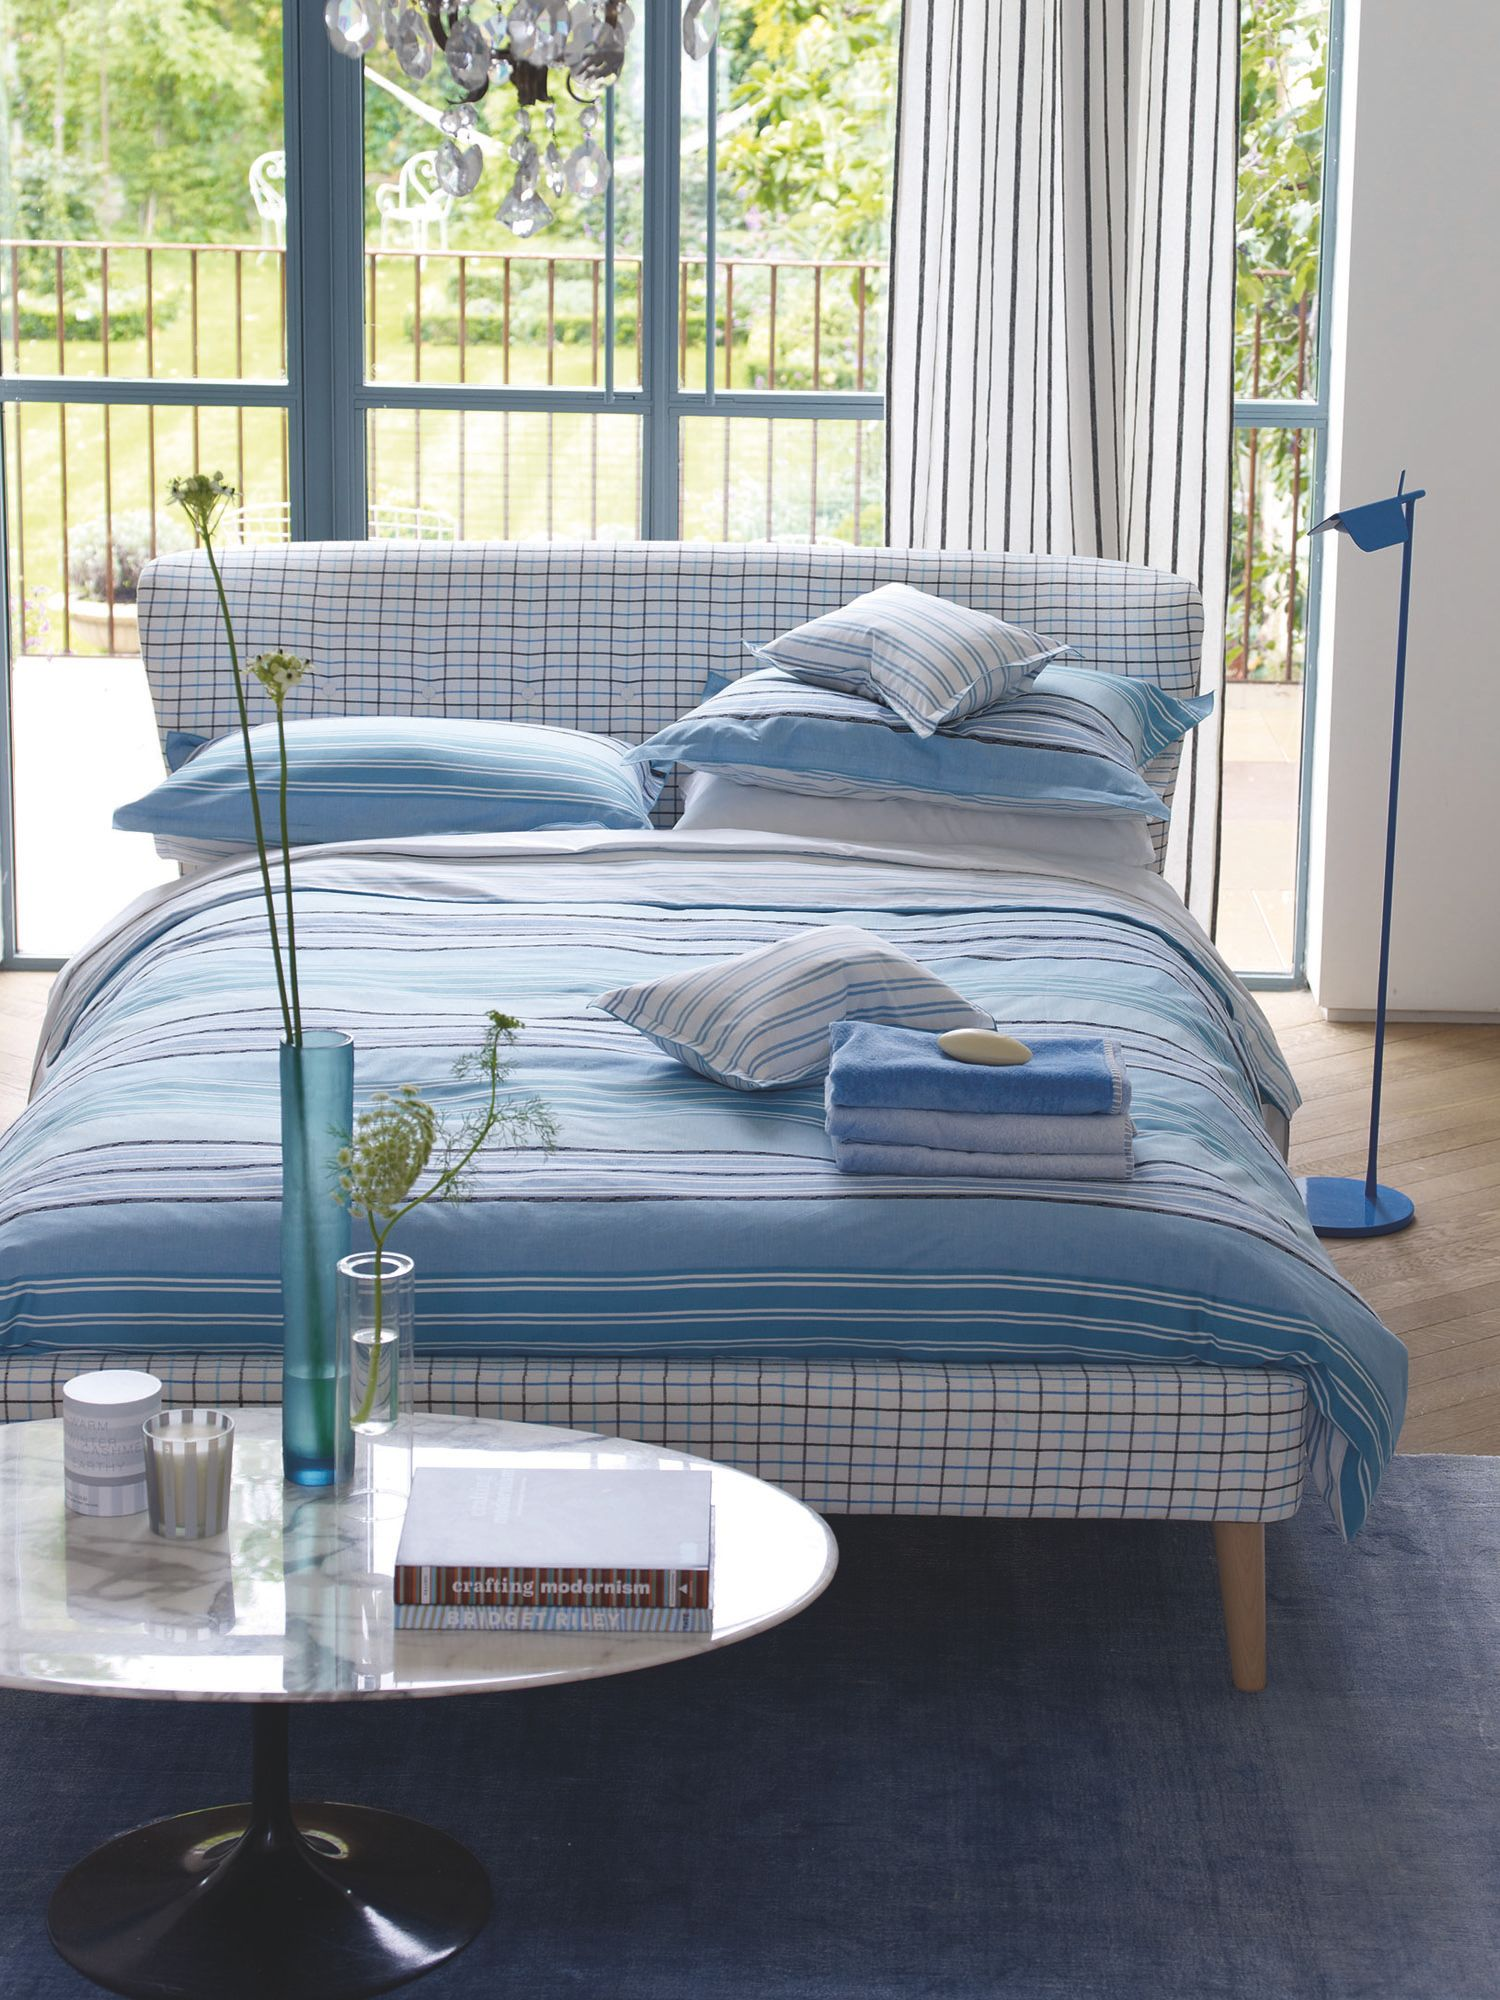 Purbeck bedlinen in sky blue